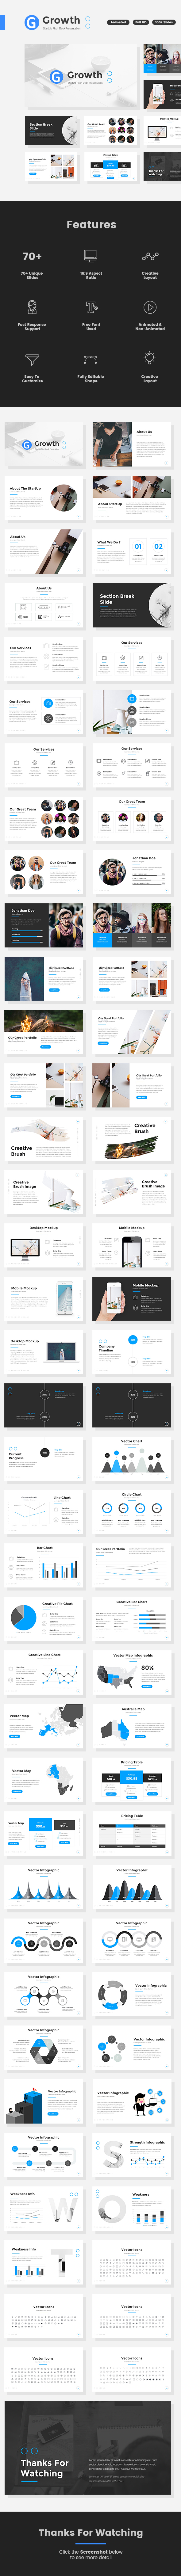 Growth - Start Up Pitch Deck Keynote Template - Keynote Templates Presentation Templates